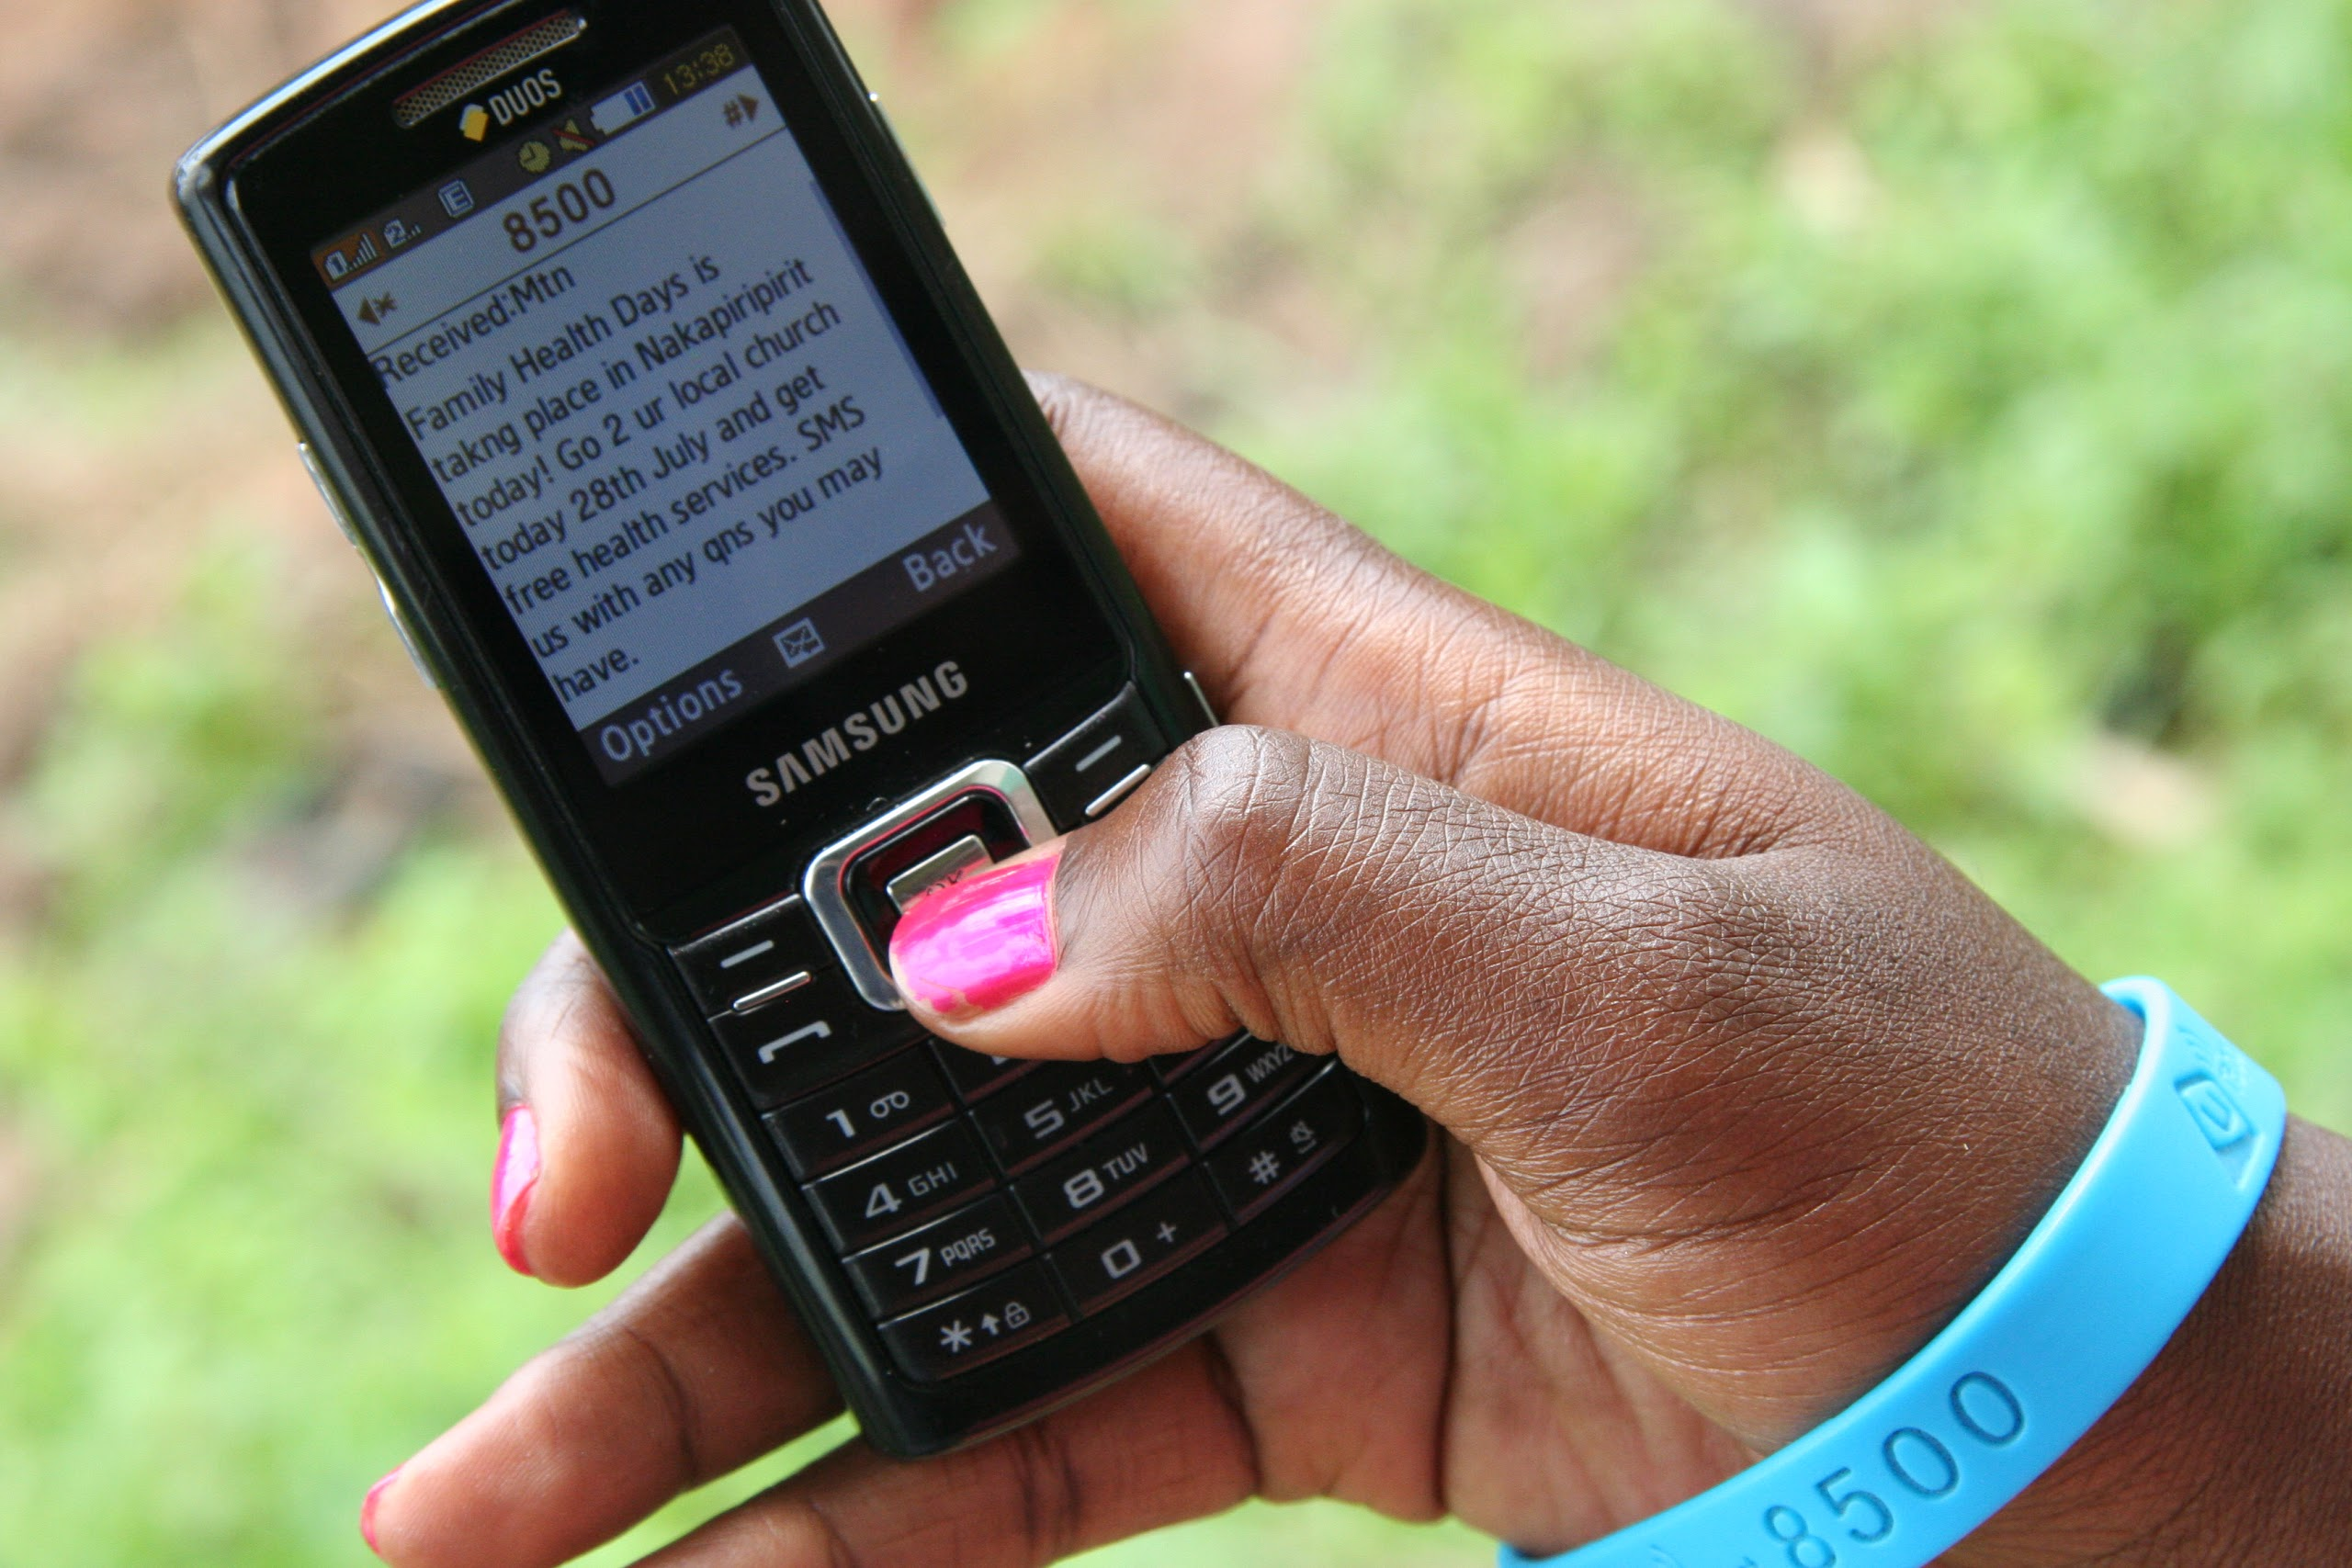 A young woman holds up a mobile phone displaying a U-report message.